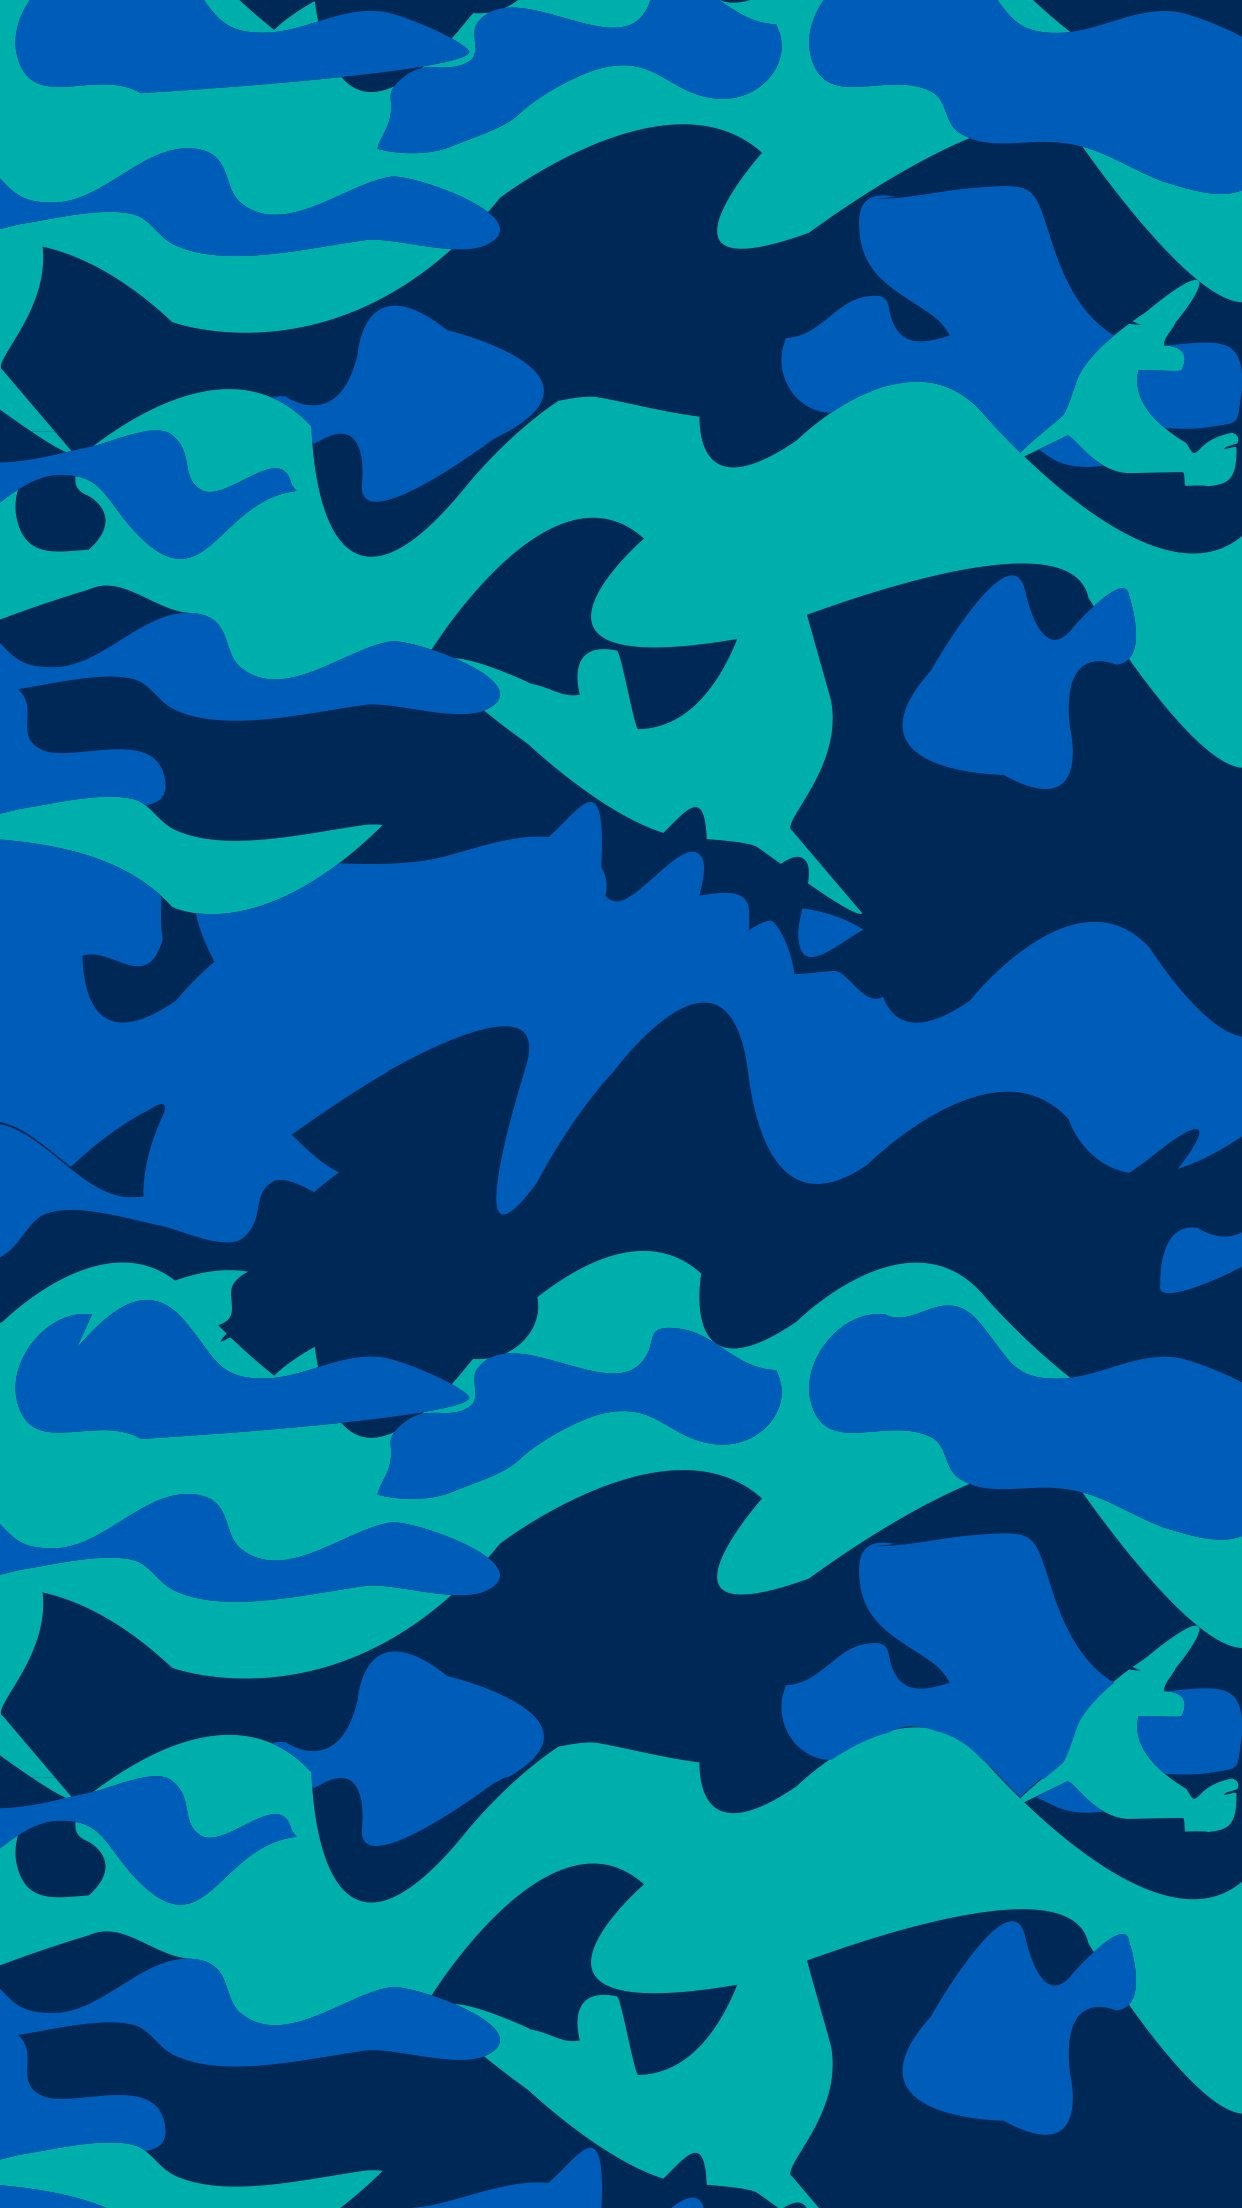 bape iphone wallpaper bape camo wallpaper hd 64 images 10223